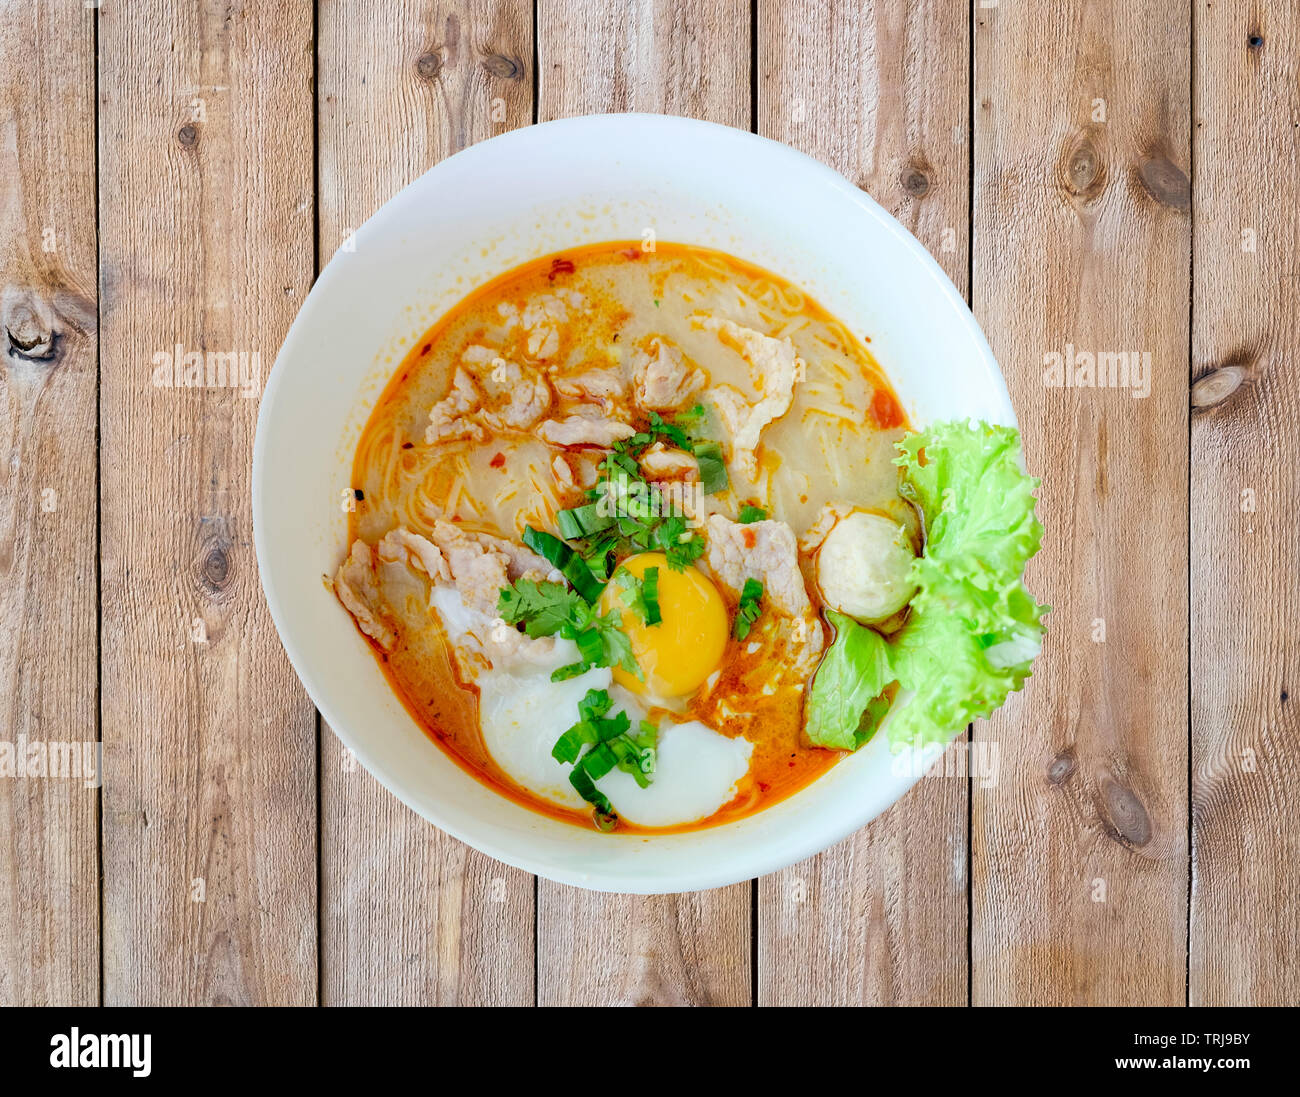 Noodle soup hot spicy pork egg and vegetable Stock Photo